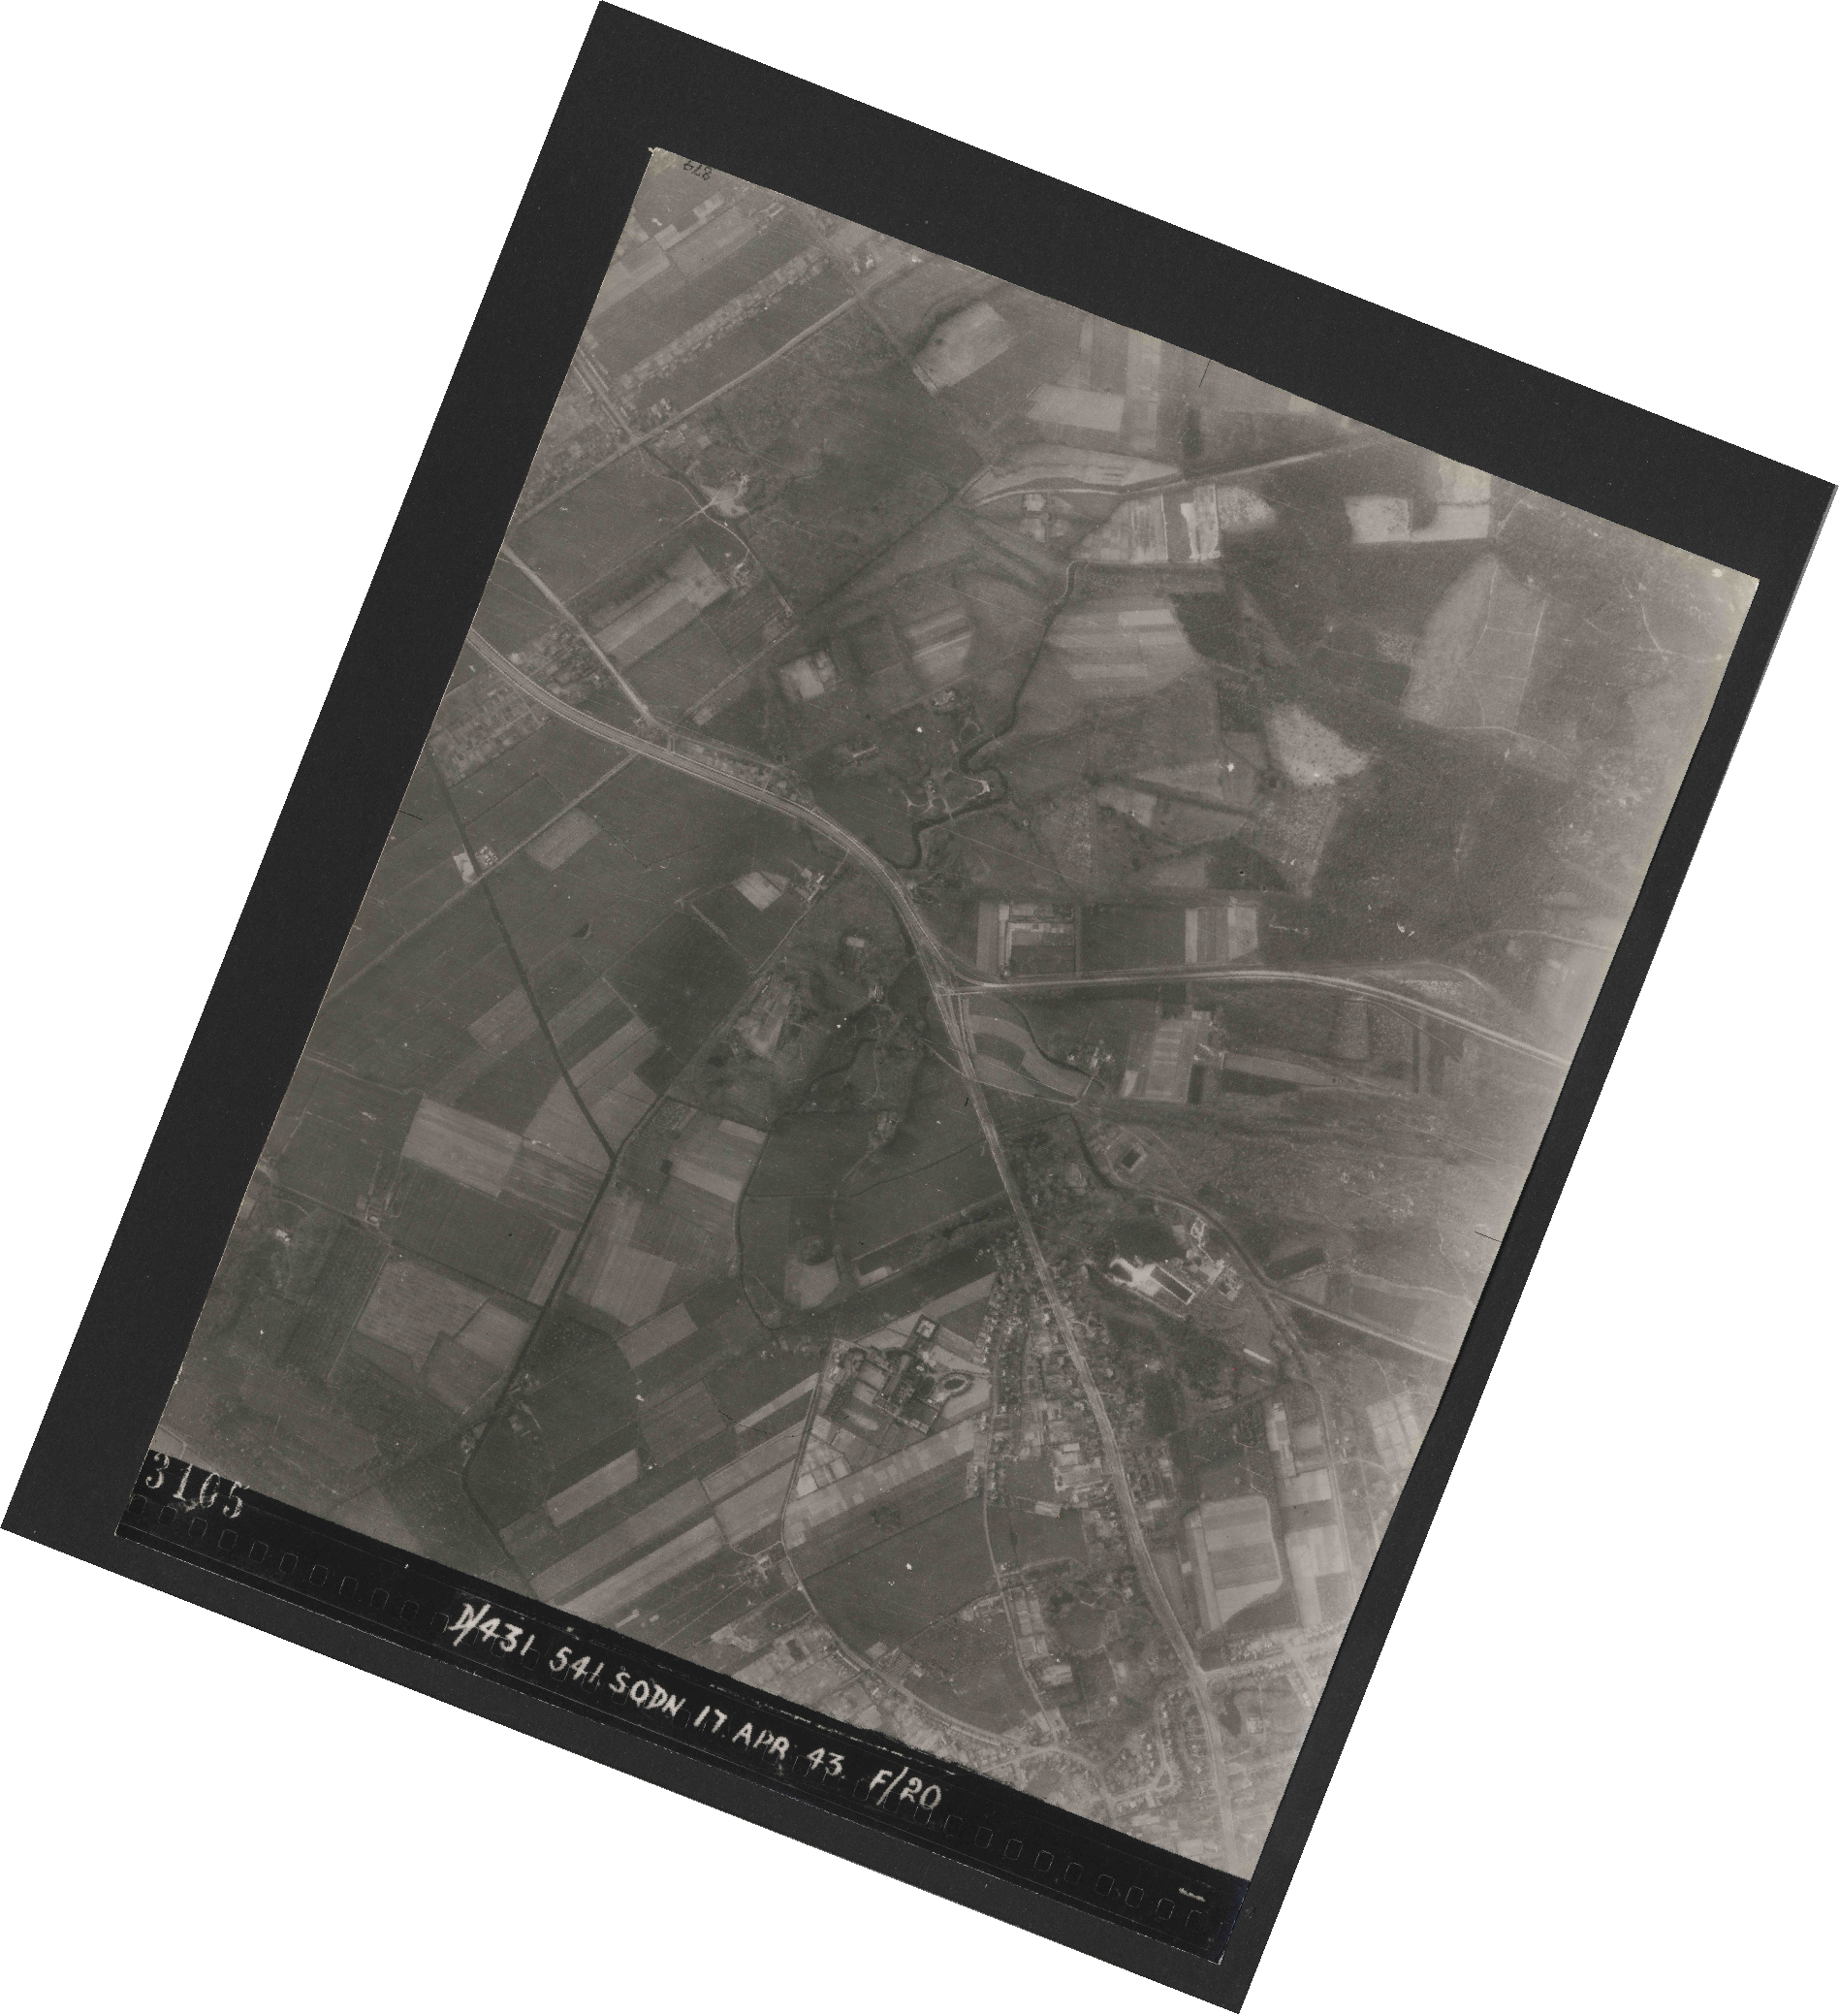 Collection RAF aerial photos 1940-1945 - flight 329, run 02, photo 3105